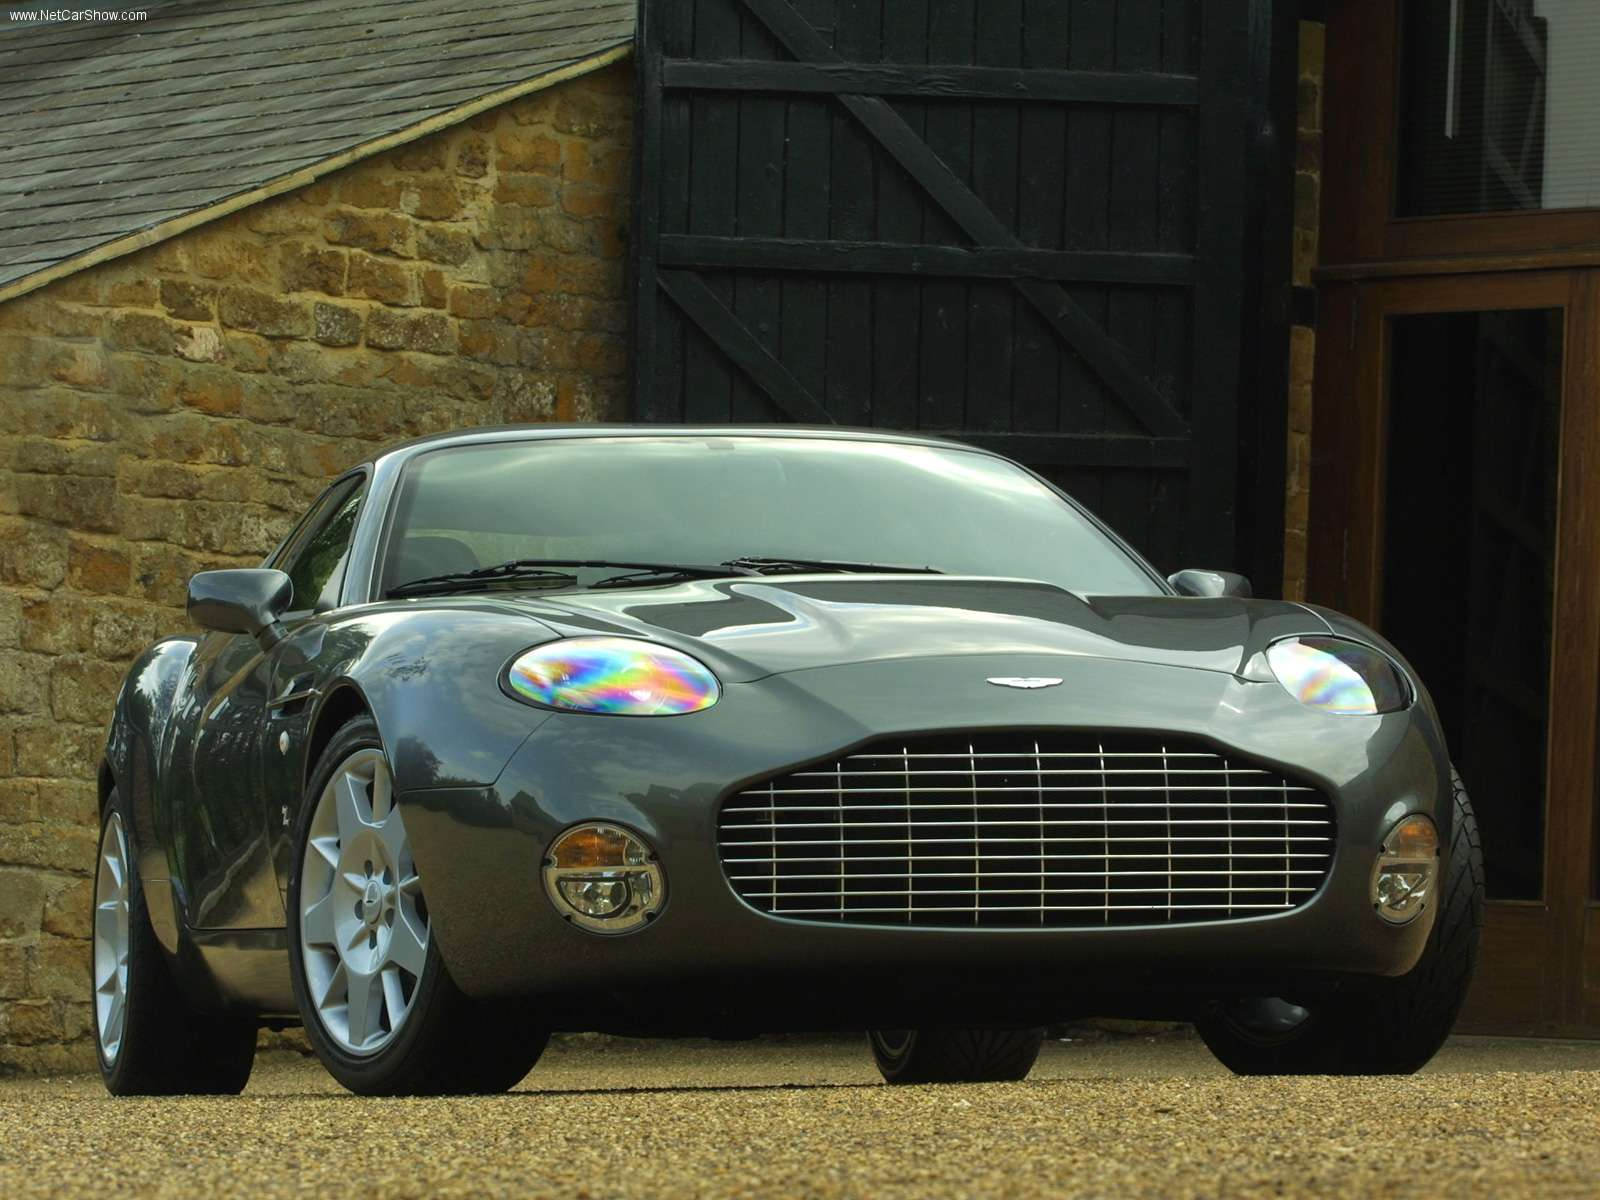 Tuning Aston Martin DB Coupe Online Accessories And Spare - Aston martin parts online